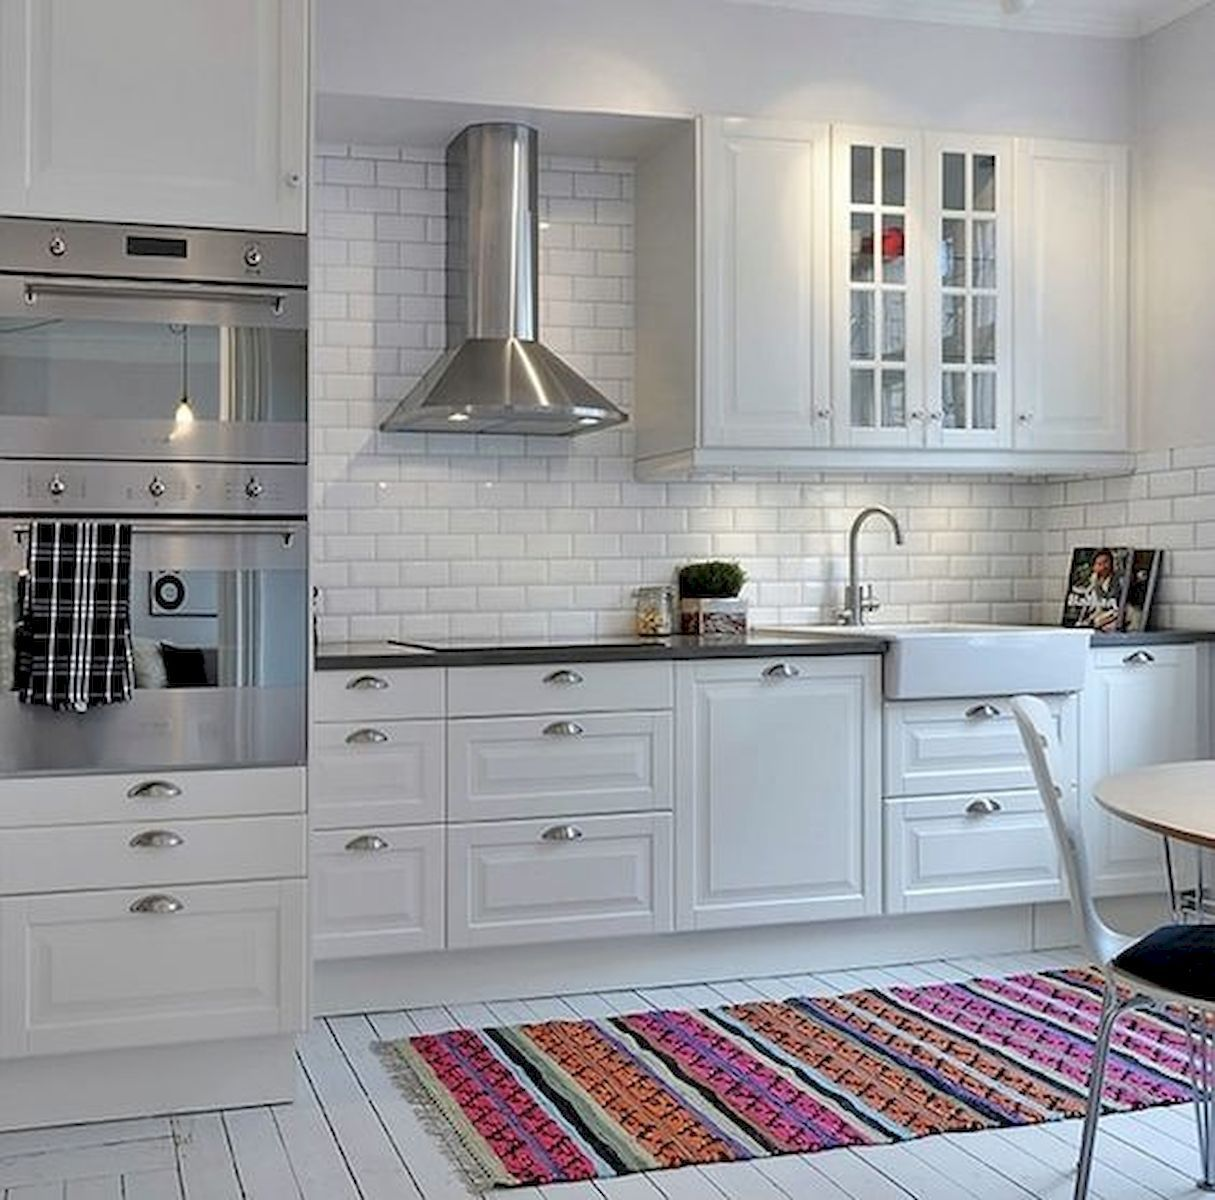 Kitchen Cabinets Zimbabwe: 40 Stunning Kitchen Rug Ideas